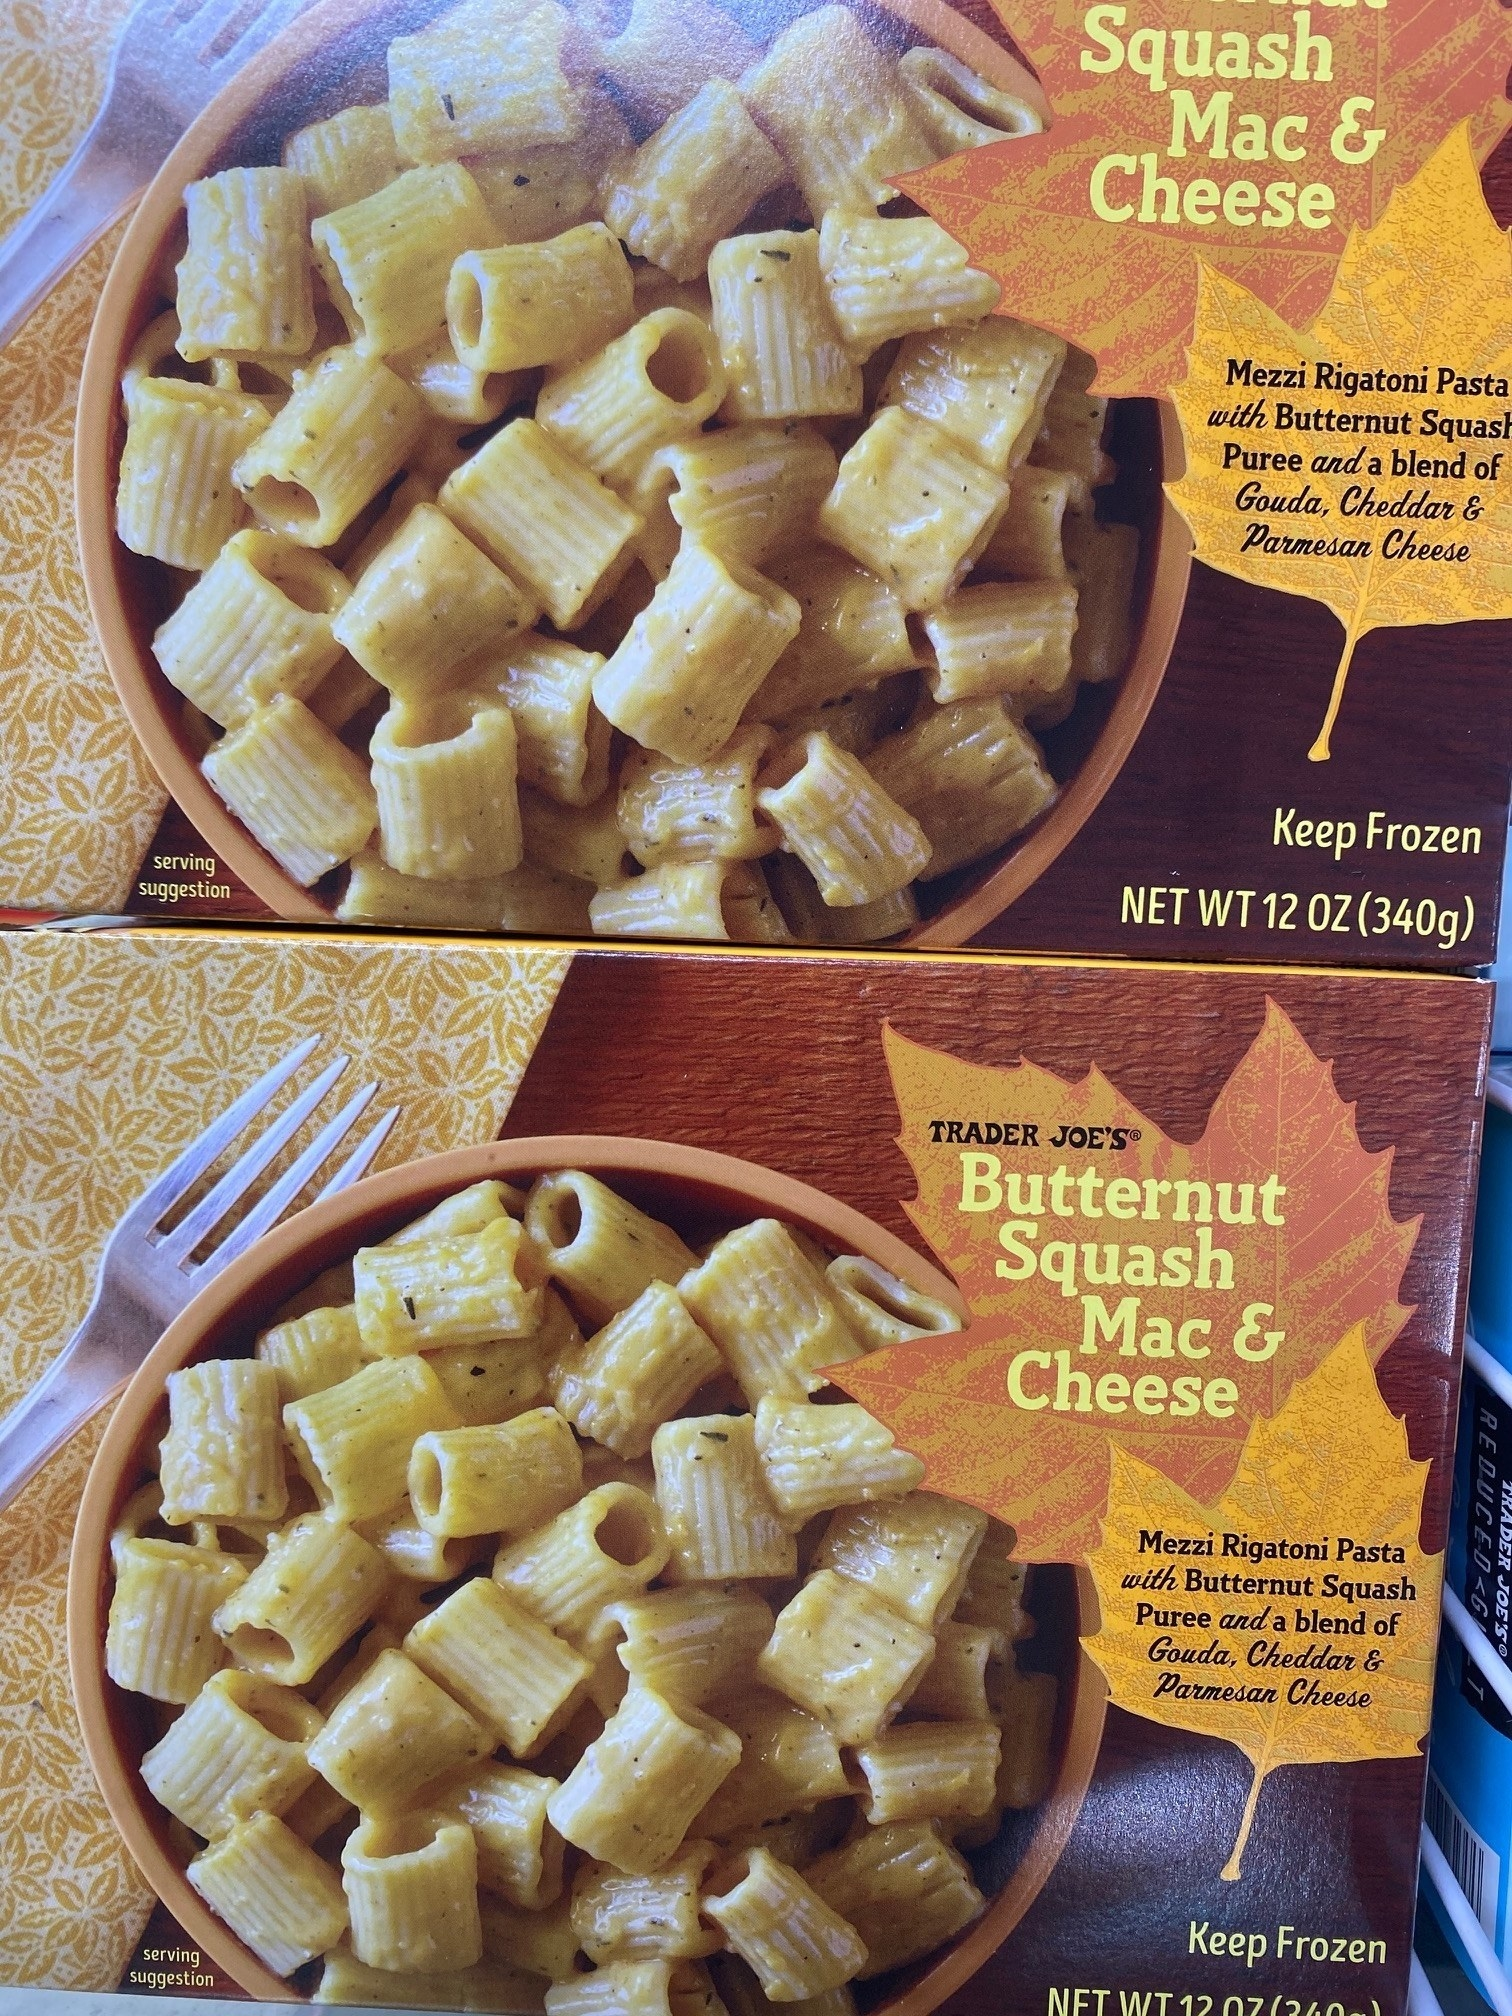 Frozen butternut squash mac 'n' cheese.